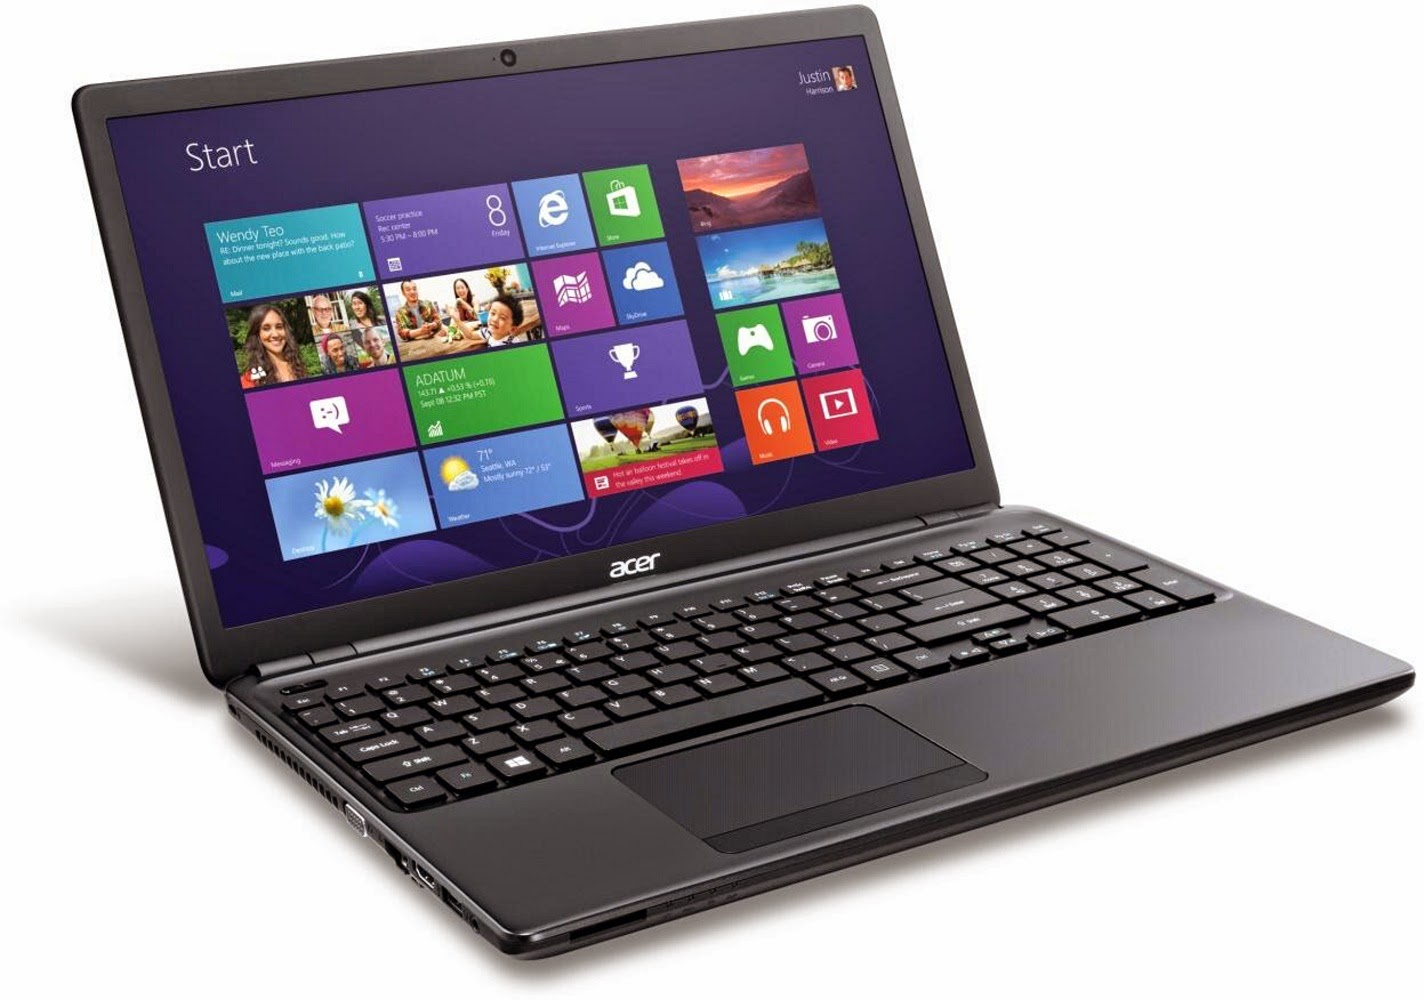 Acer TravelMate P245-M Notebook Laptop Price, Specification & Review